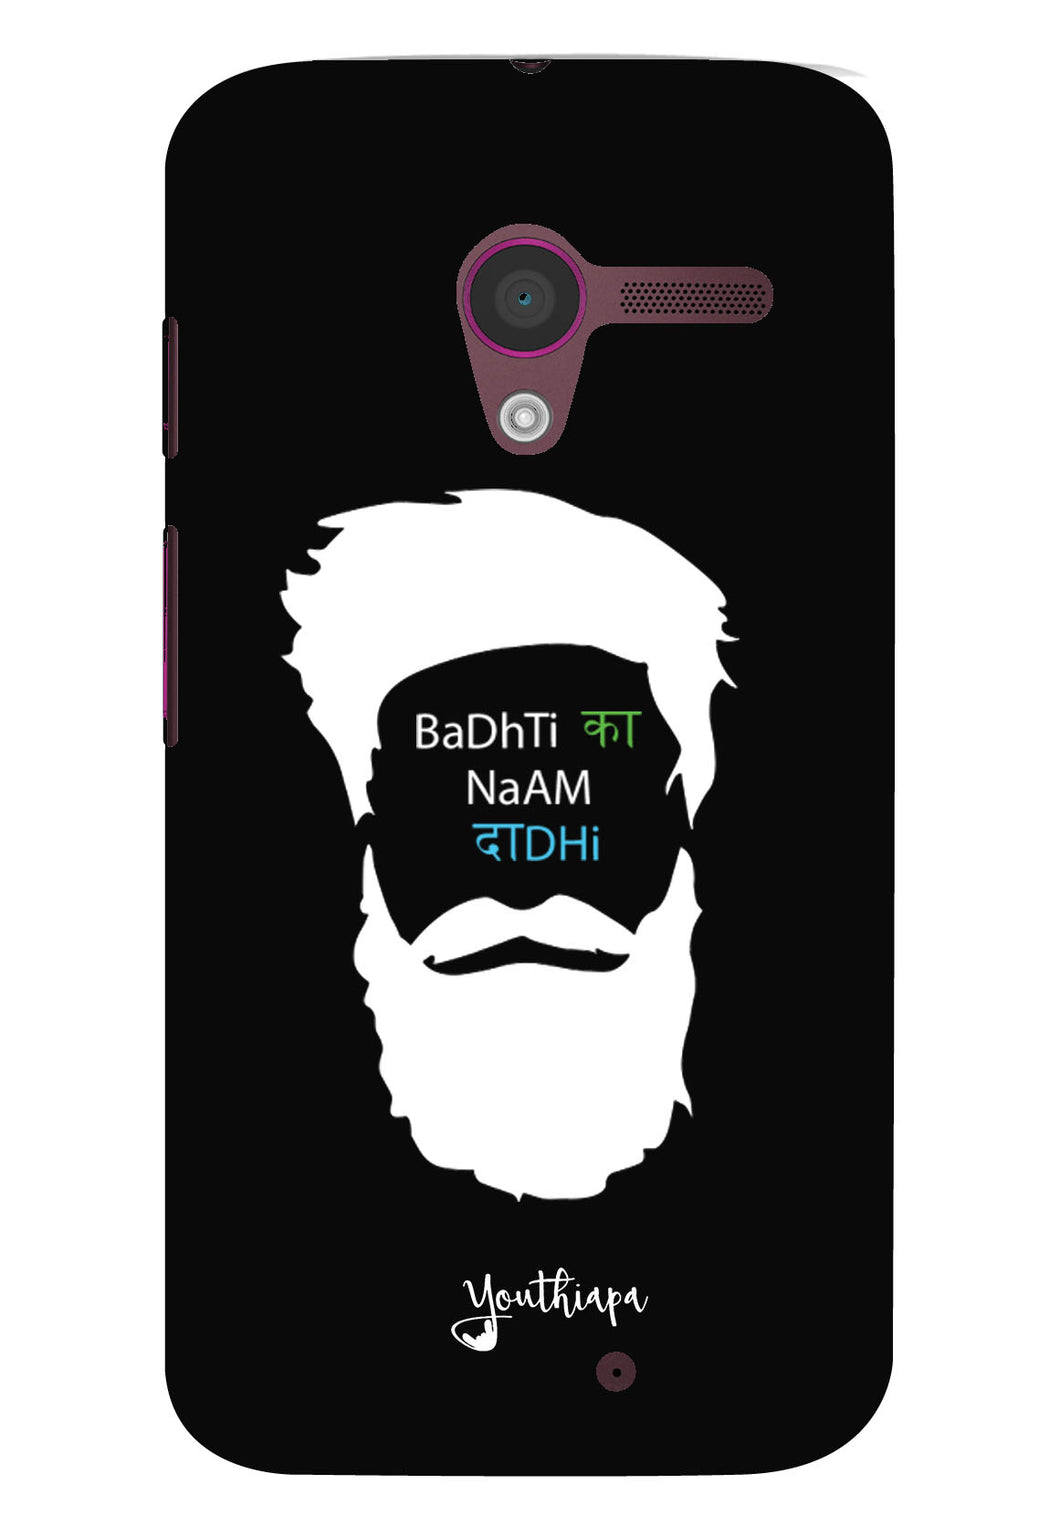 The Beard Edition for MOTO X